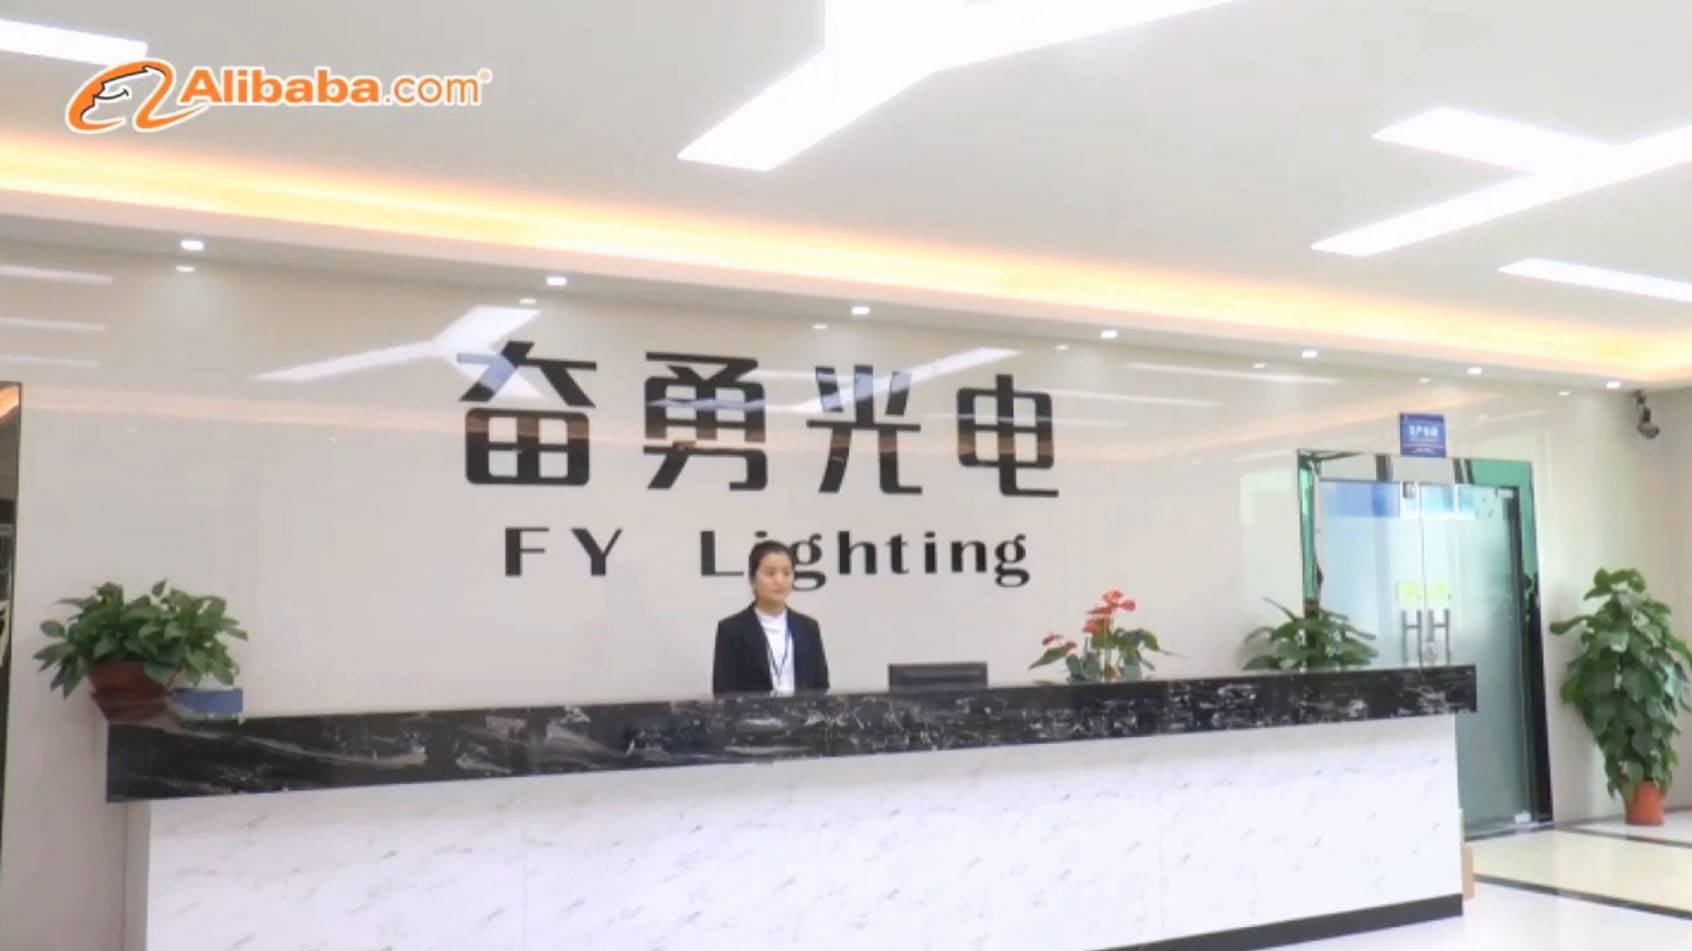 FY Lighting factory